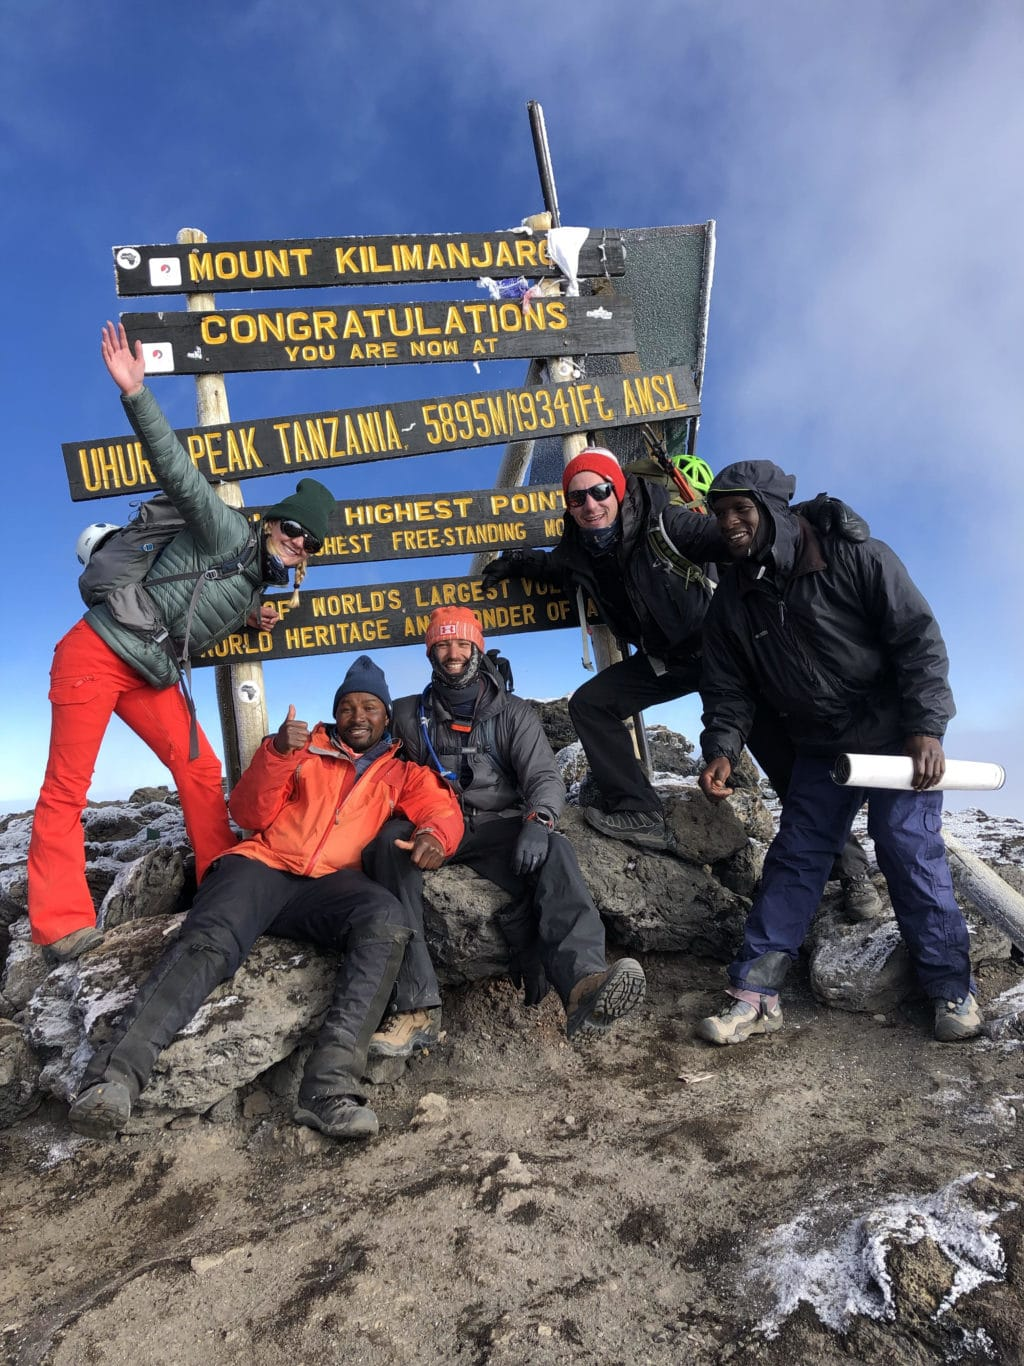 Summit of Mt. Kilimanjaro sign with five people